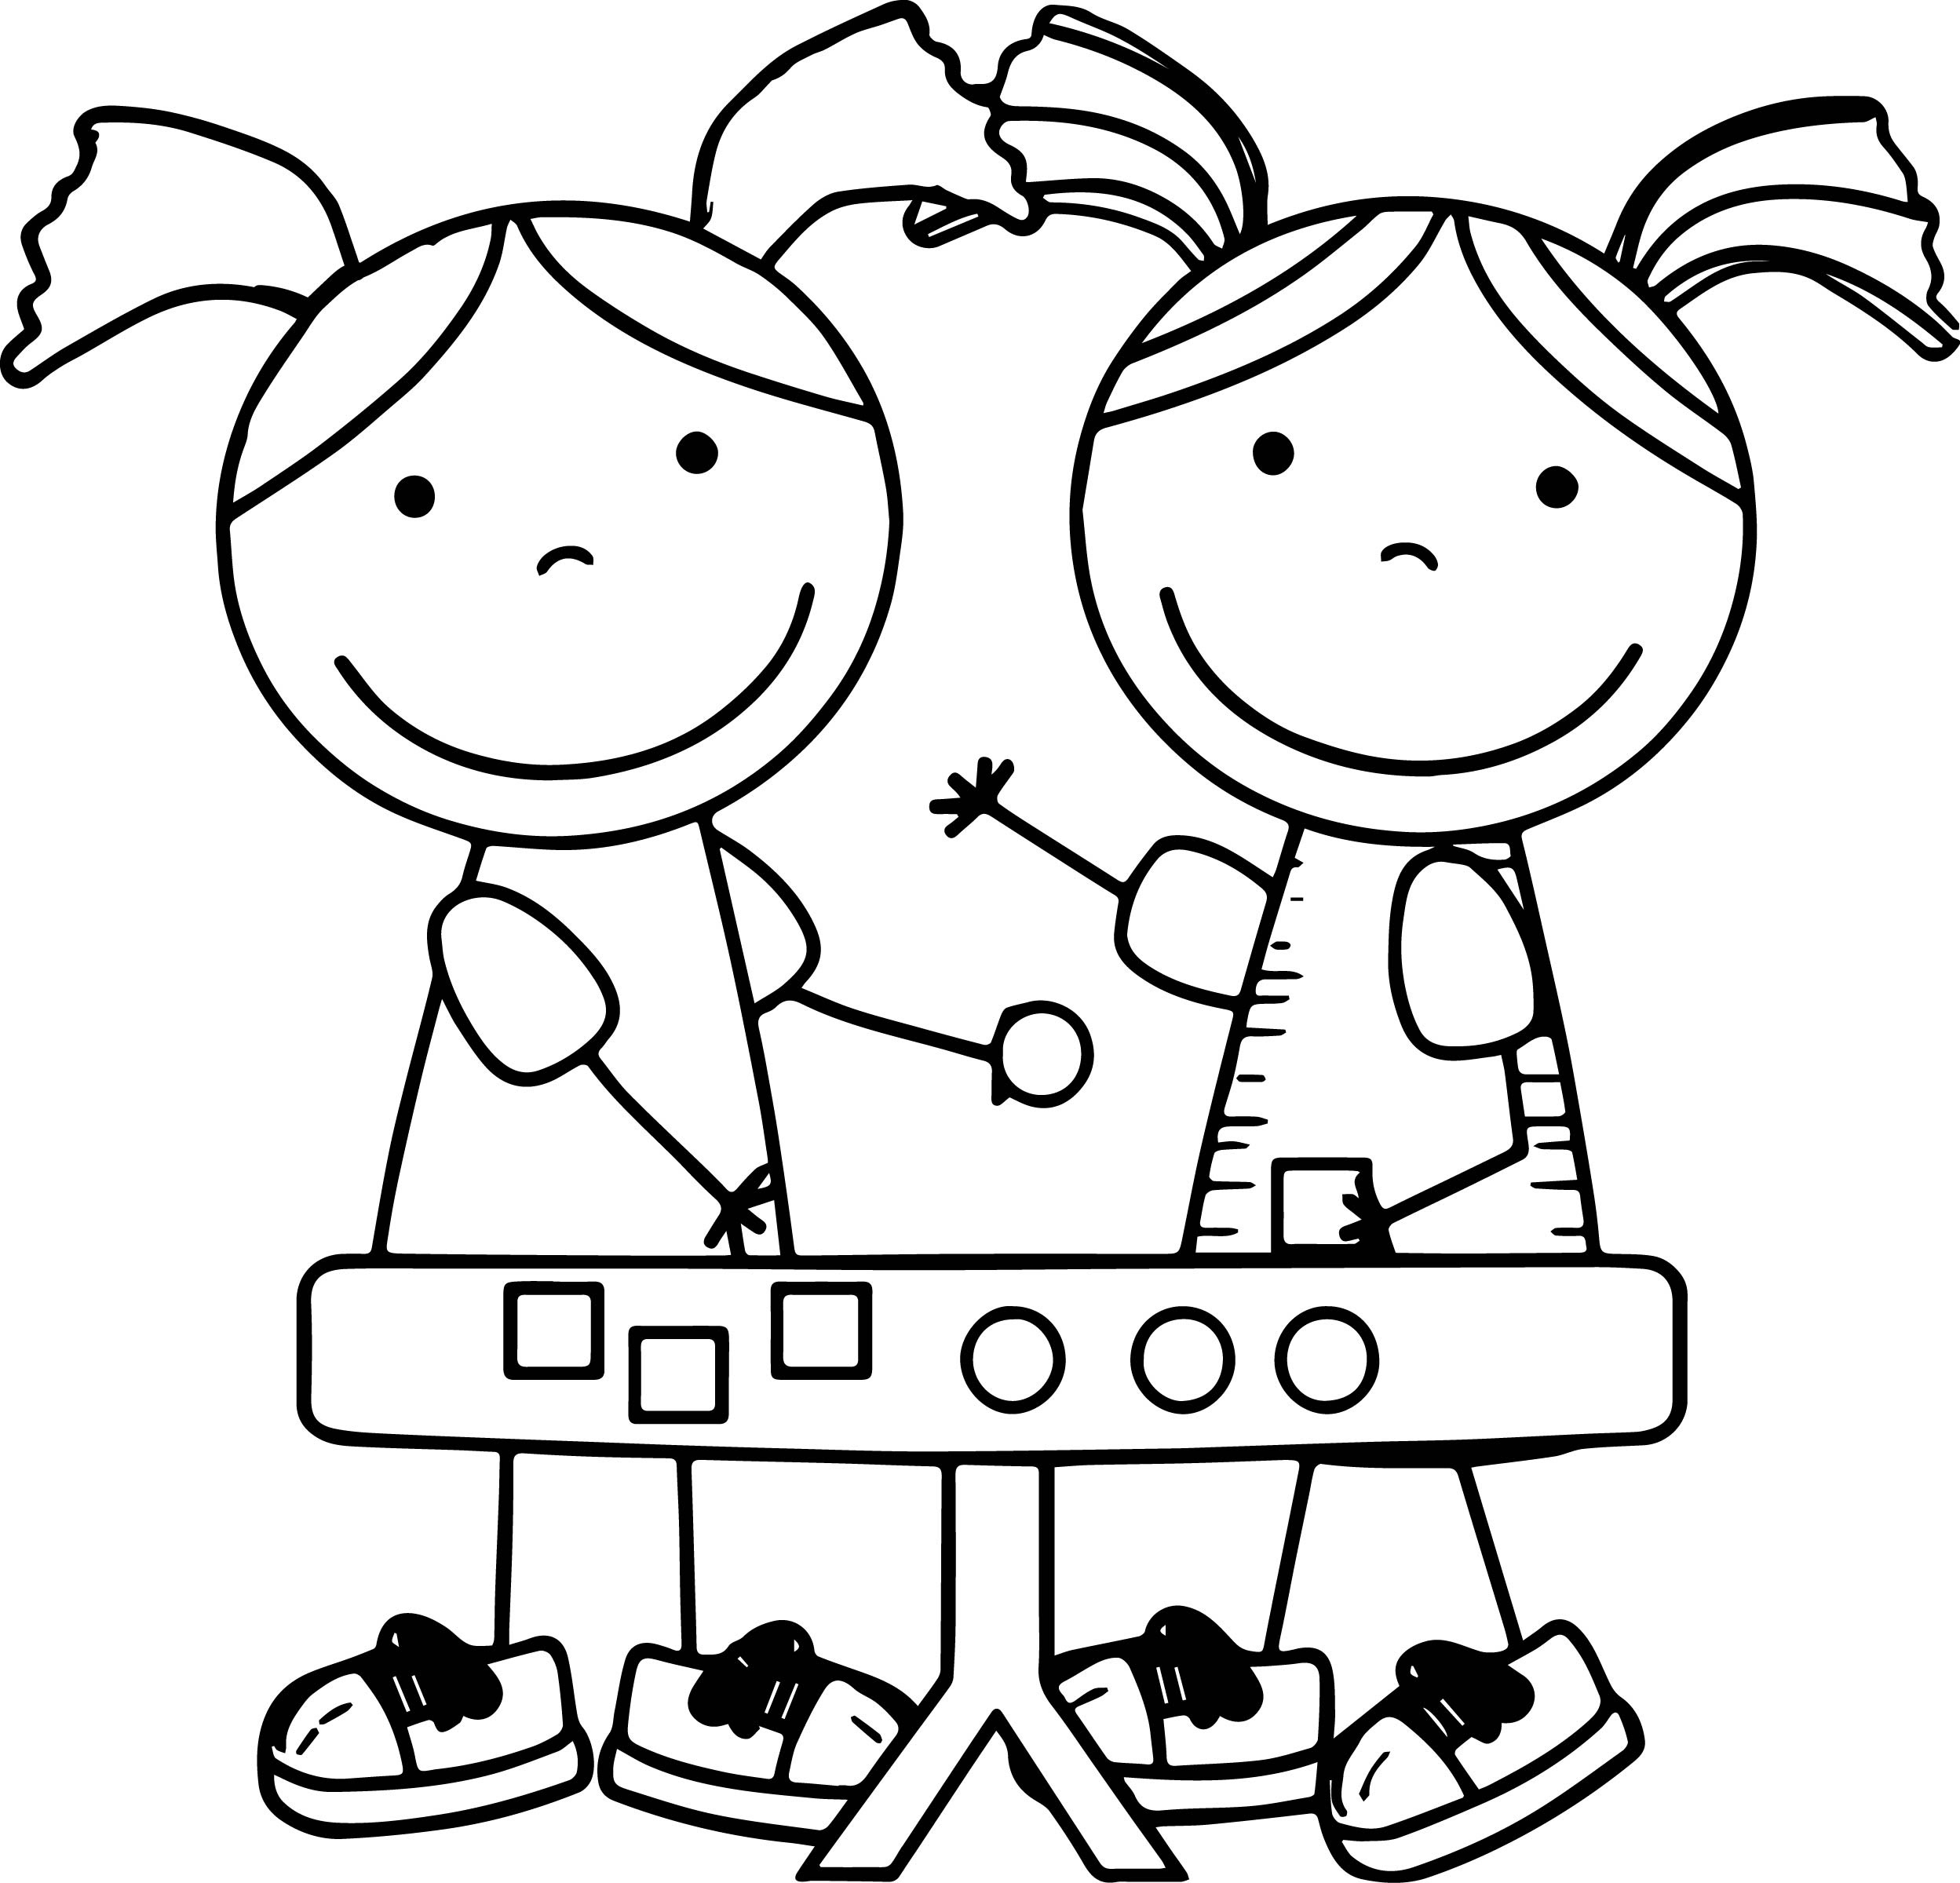 Math Game Girl Kids Coloring Page | Wecoloringpage.com